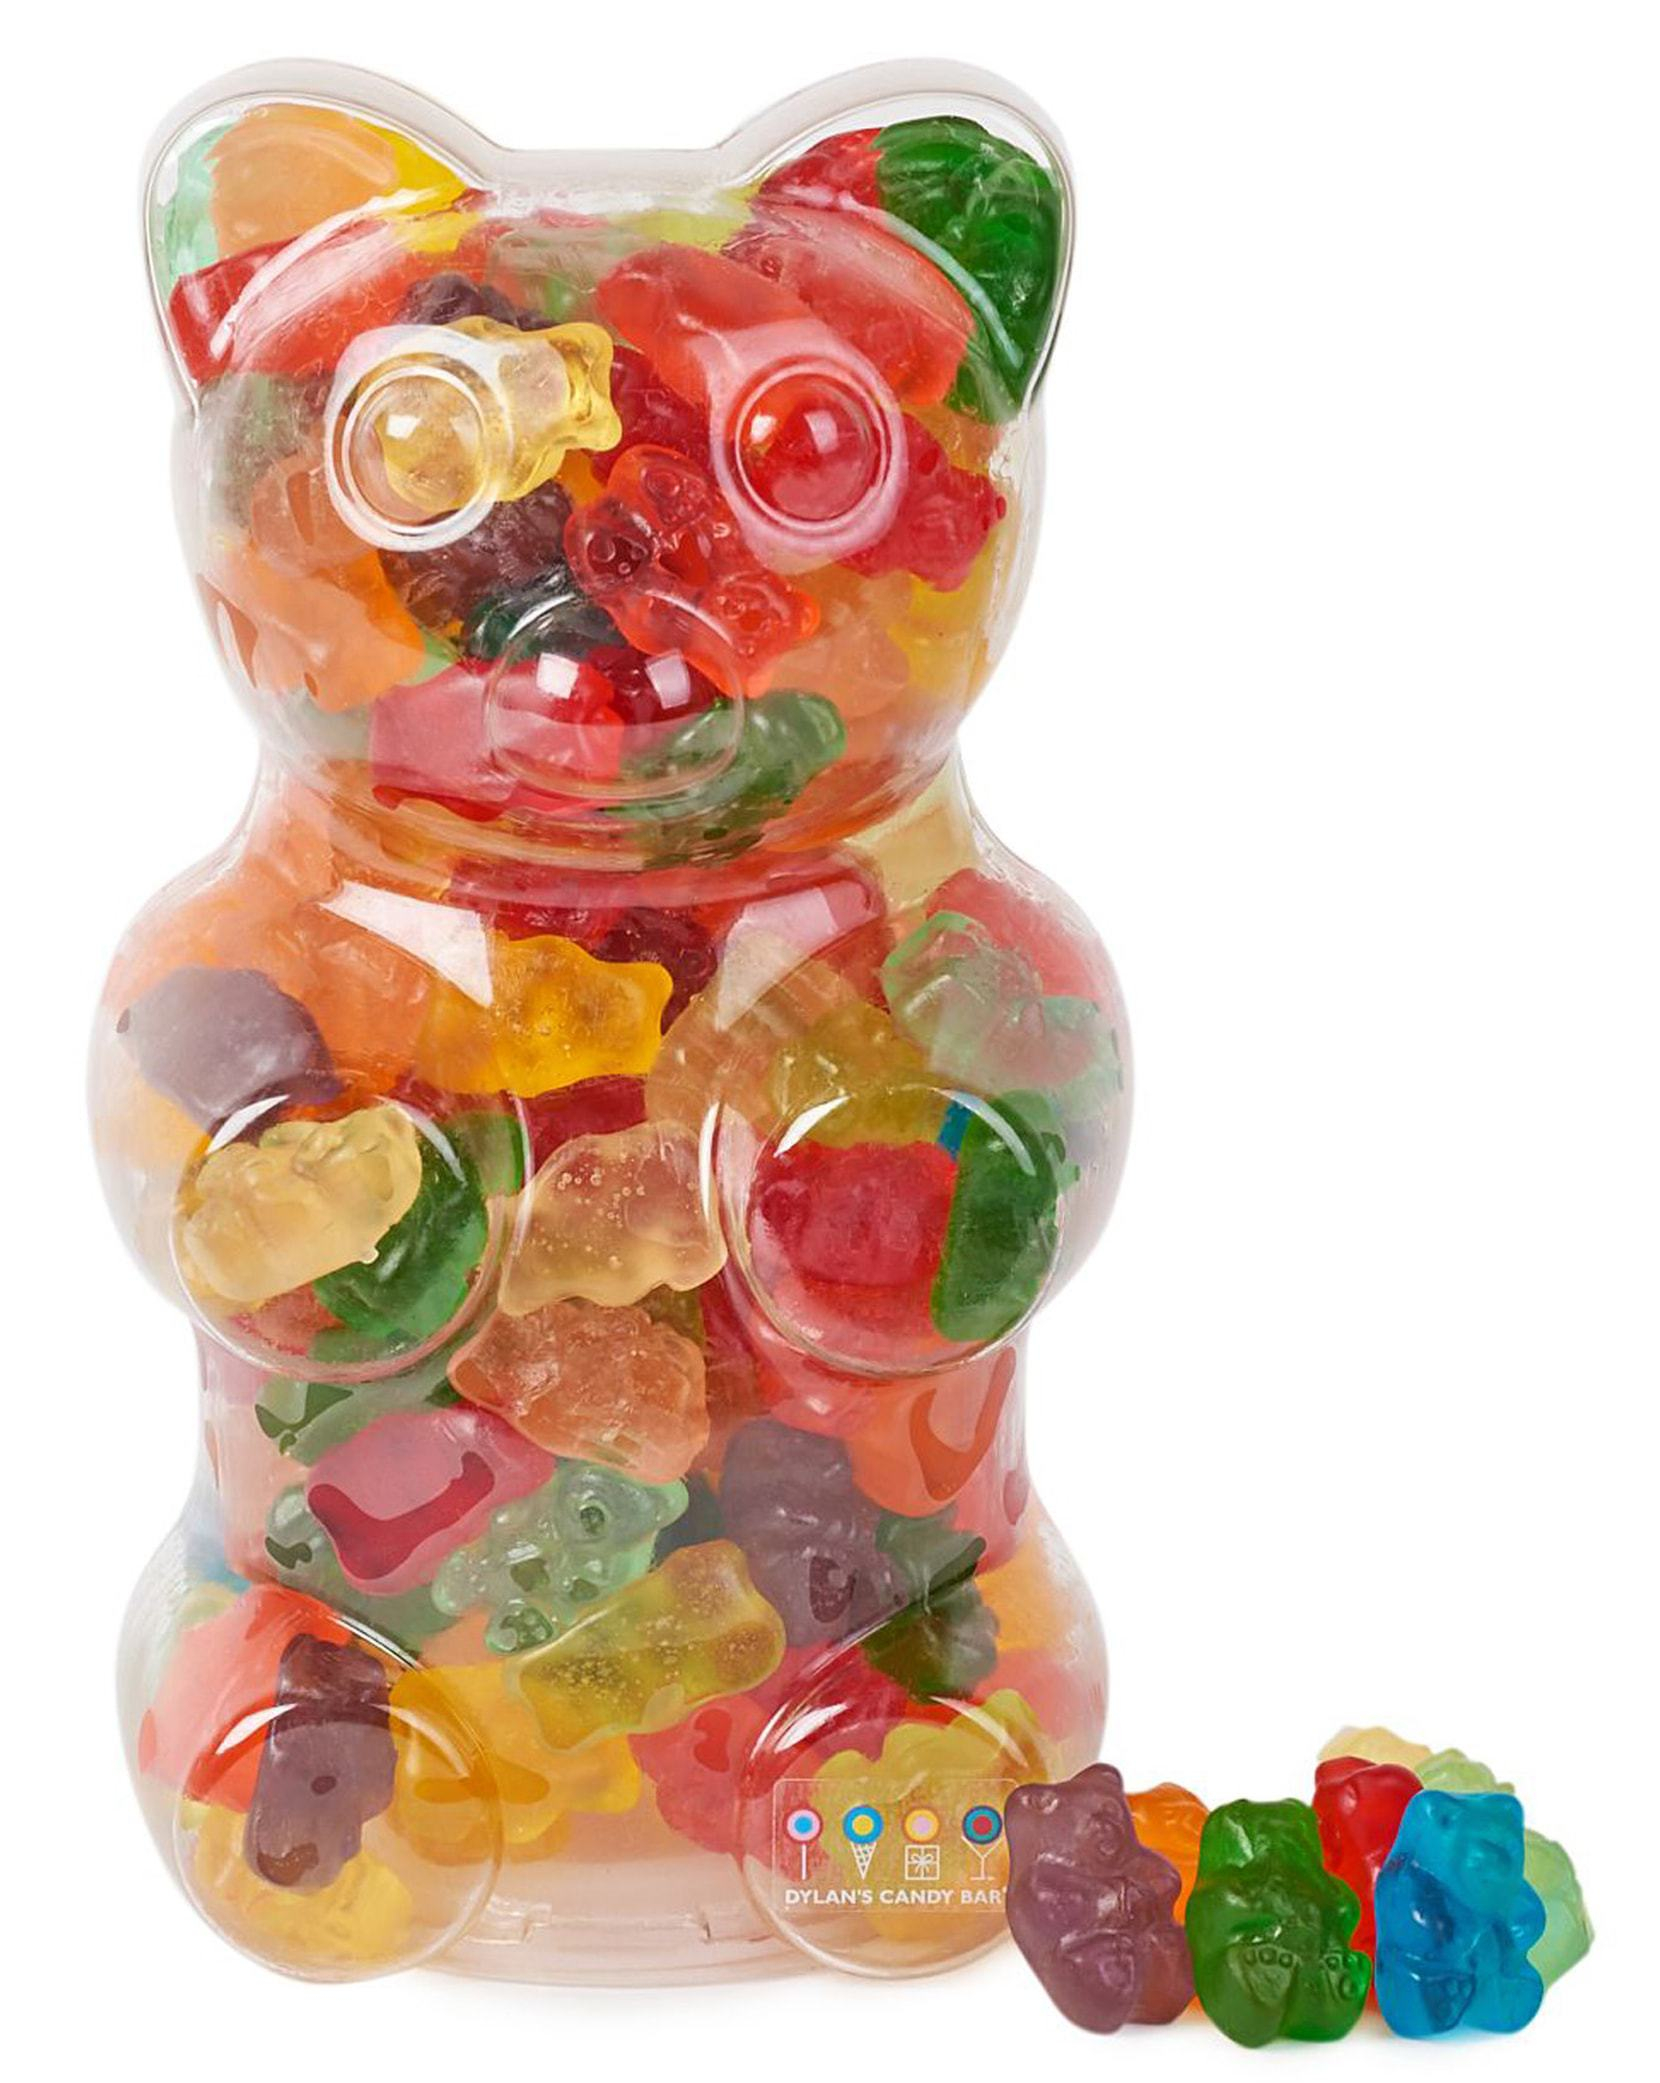 dylans gummy bear banl e1534261674922 - Gourmet Candy For The Sweet Tooth Afficonado - Friday Faves